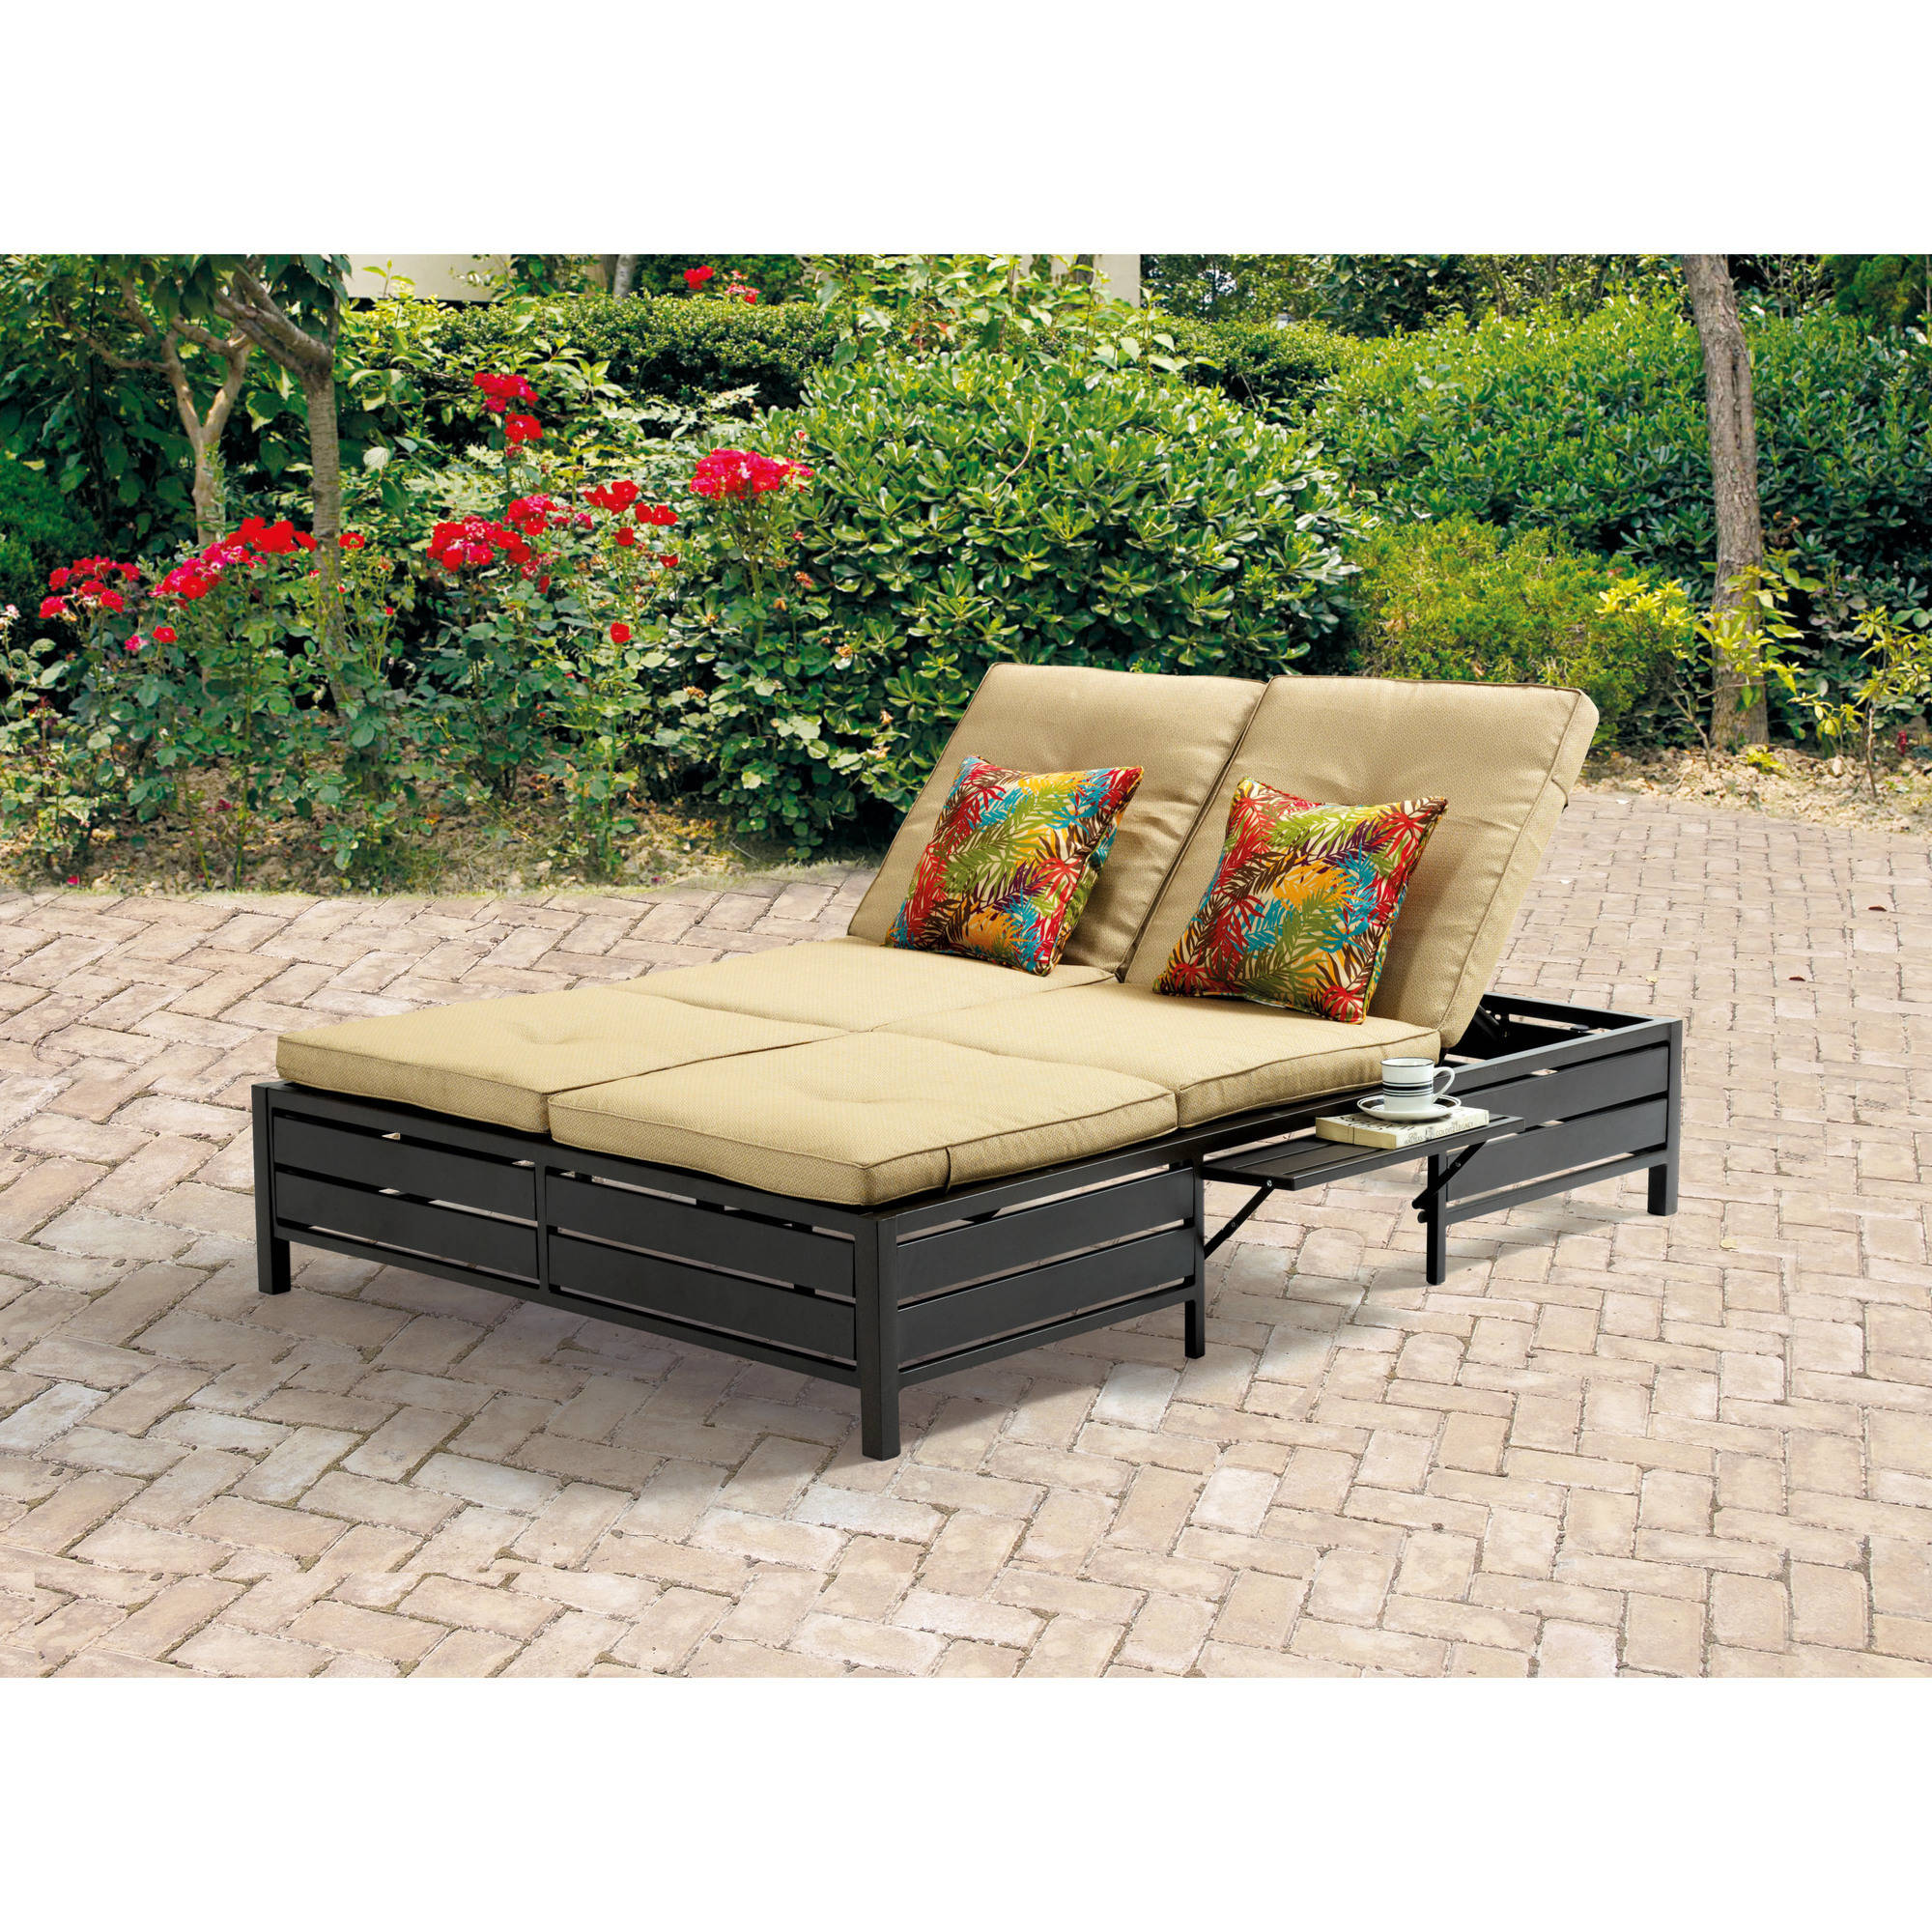 mainstays outdoor double chaise lounge bench for patio tan seats 2